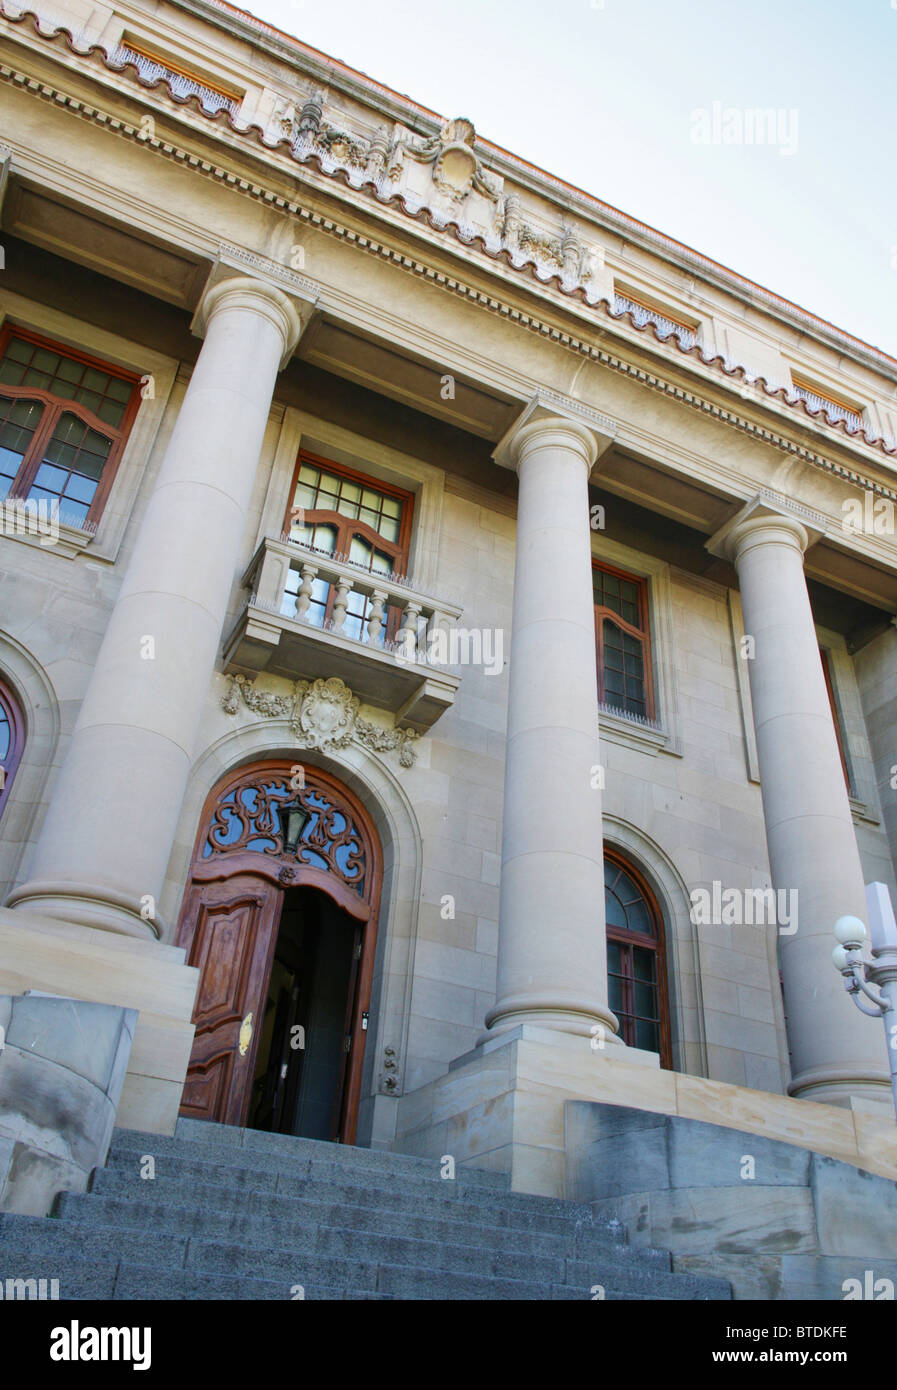 Entrance to the Supreme Court of Appeal in Bloemfontein, the legislative capital of South Africa. Built 1929 - Stock Image